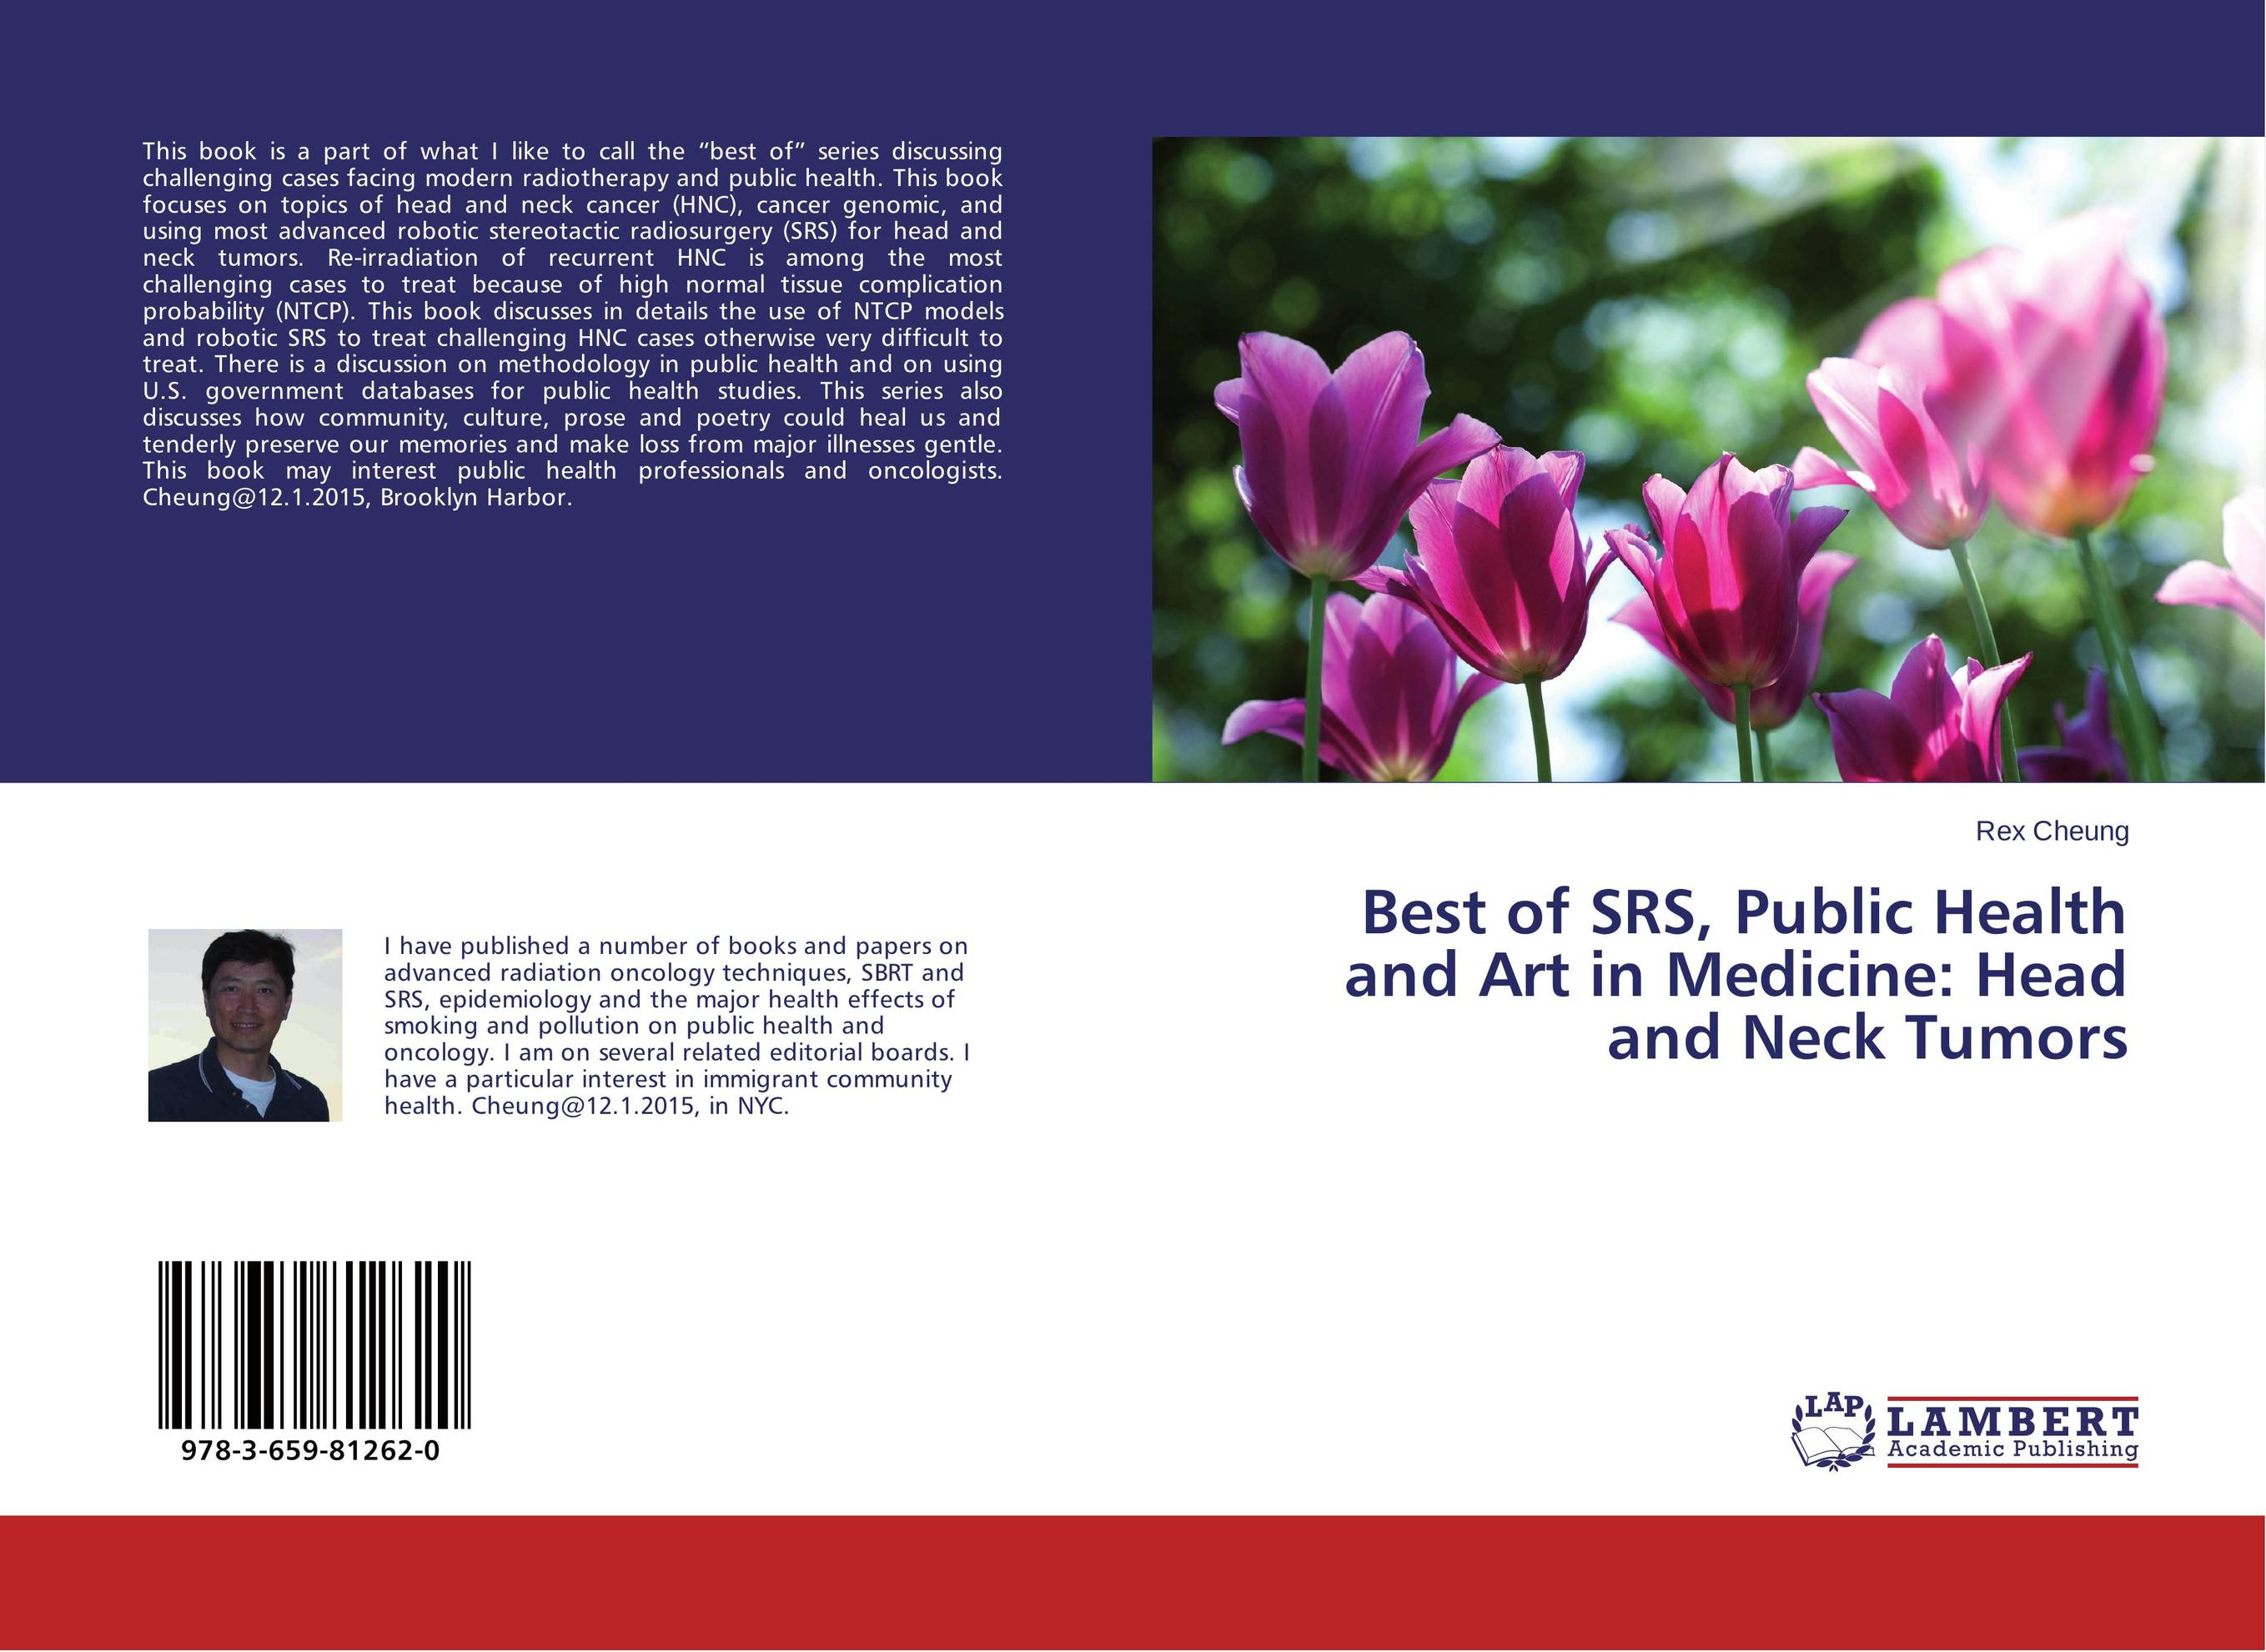 Best of SRS, Public Health and Art in Medicine: Head and Neck Tumors prostate health devices is prostate removal prostatitis mainly for the prostate health and prostatitis health capsule